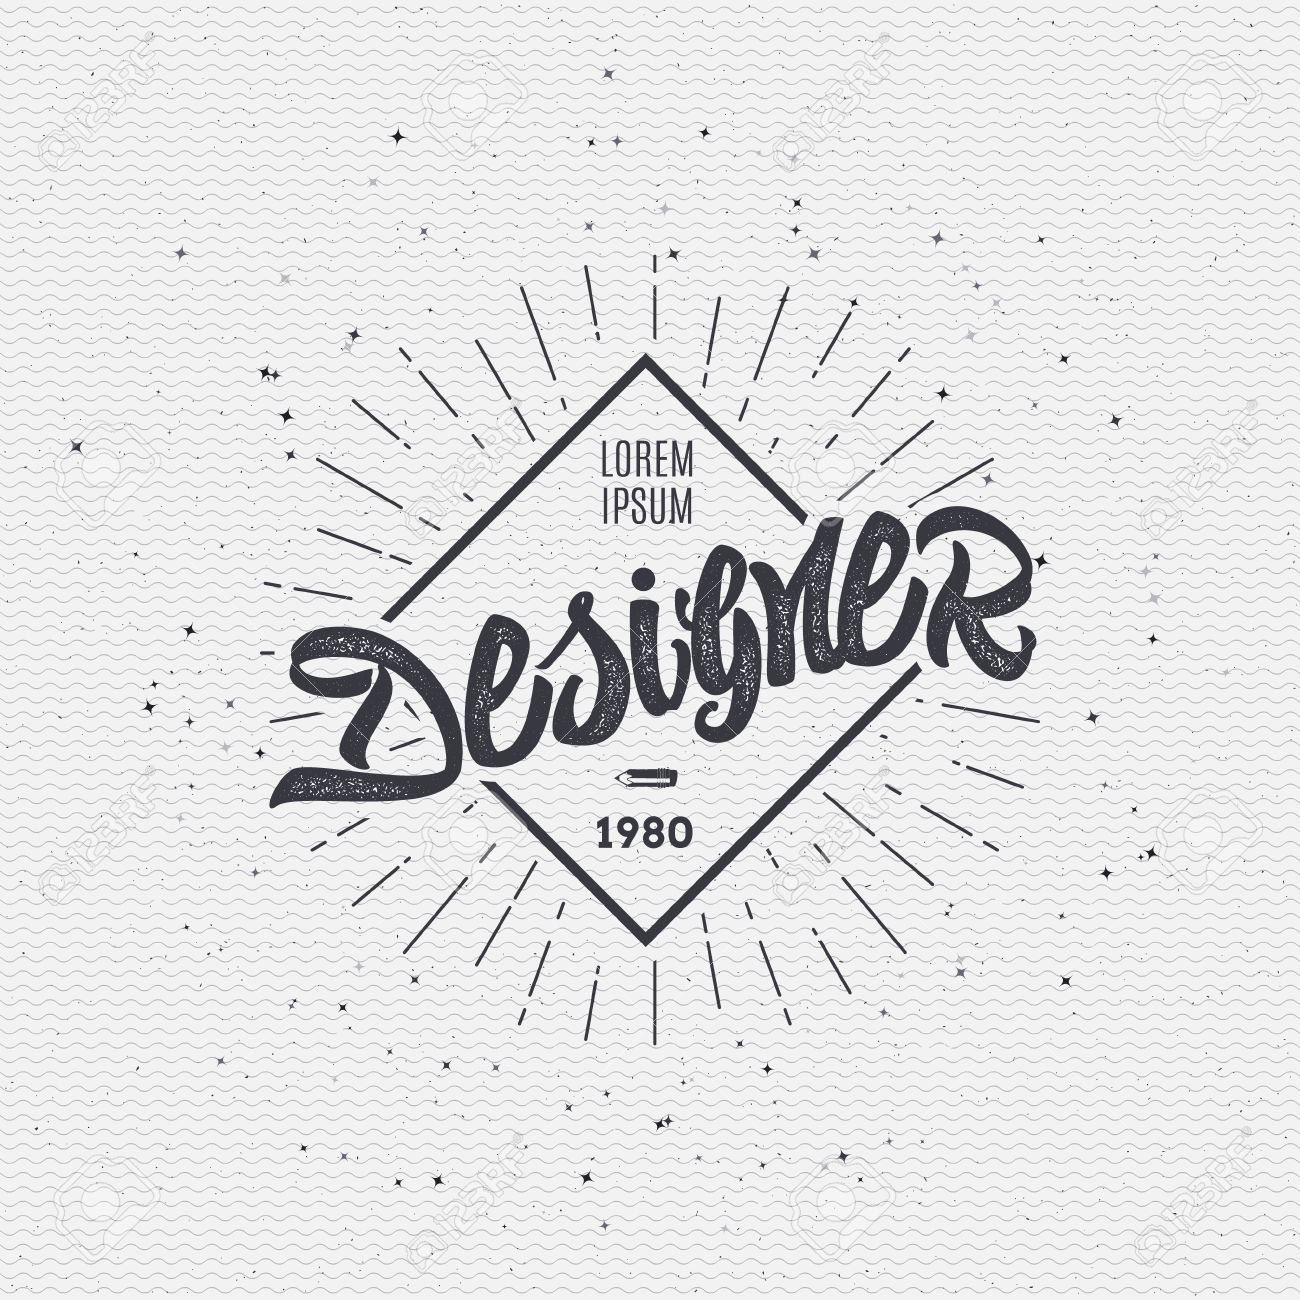 designer calligraphic writing the word lettering using design